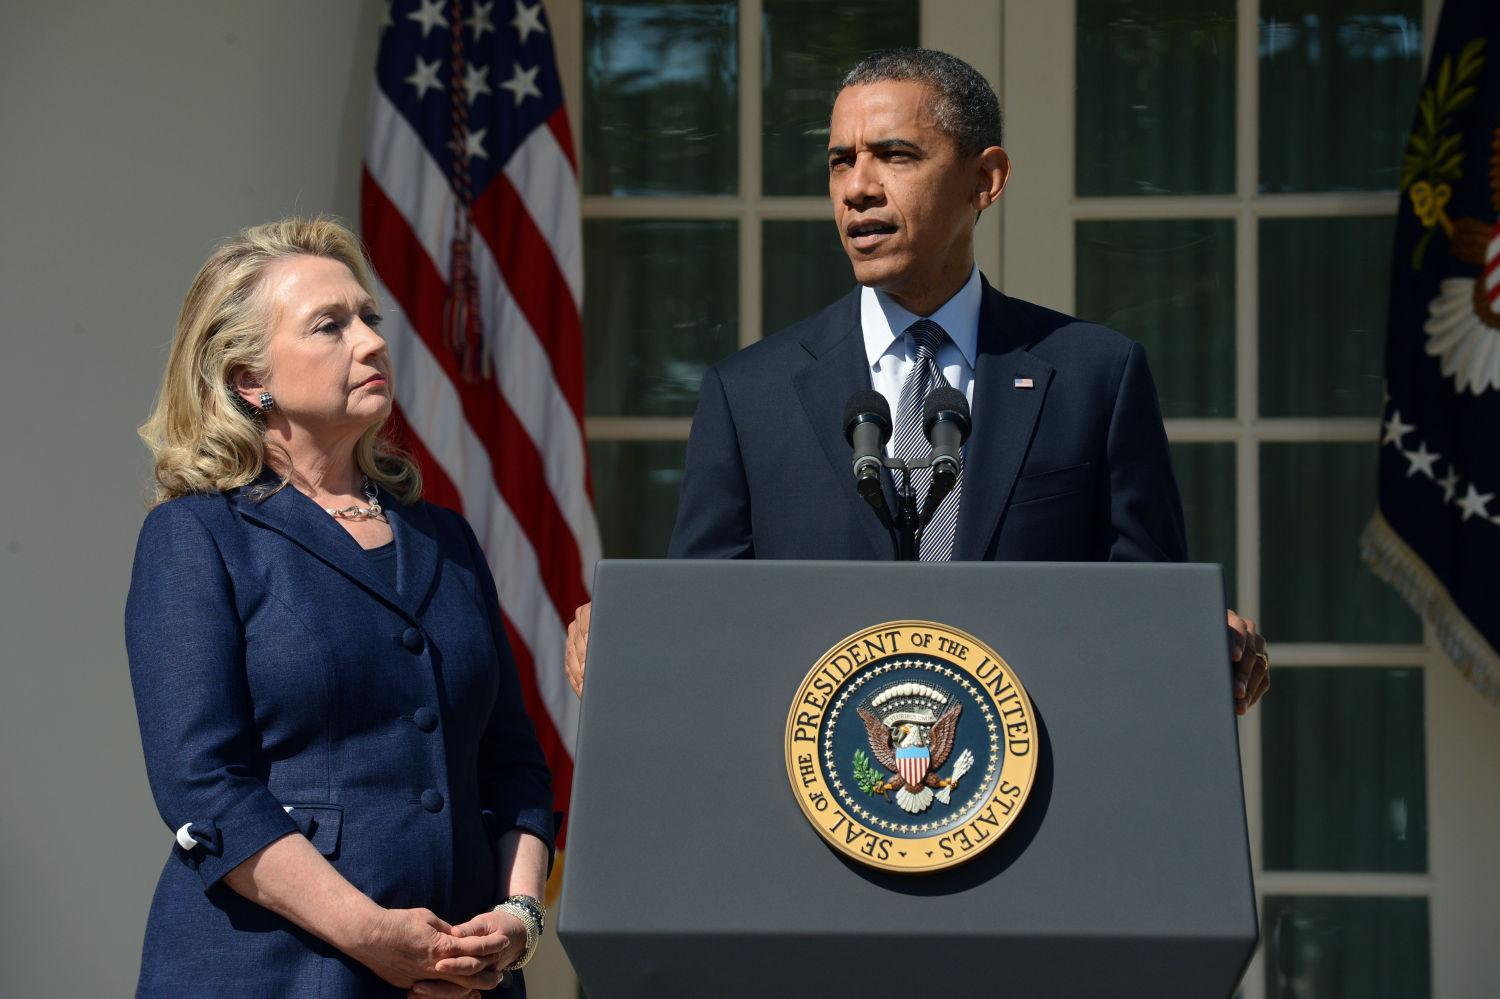 President Barack Obama delivers remarks beside Secretary of State Hillary Clinton, left, on the killing of US ambassador to Libya, Christopher Stevens, and three embassy staff, Wednesday, September 12, 2012, in the Rose Garden of the White House in Washington. (Pool photo by Michael Reynolds/EPA via Abaca Press/MCT)